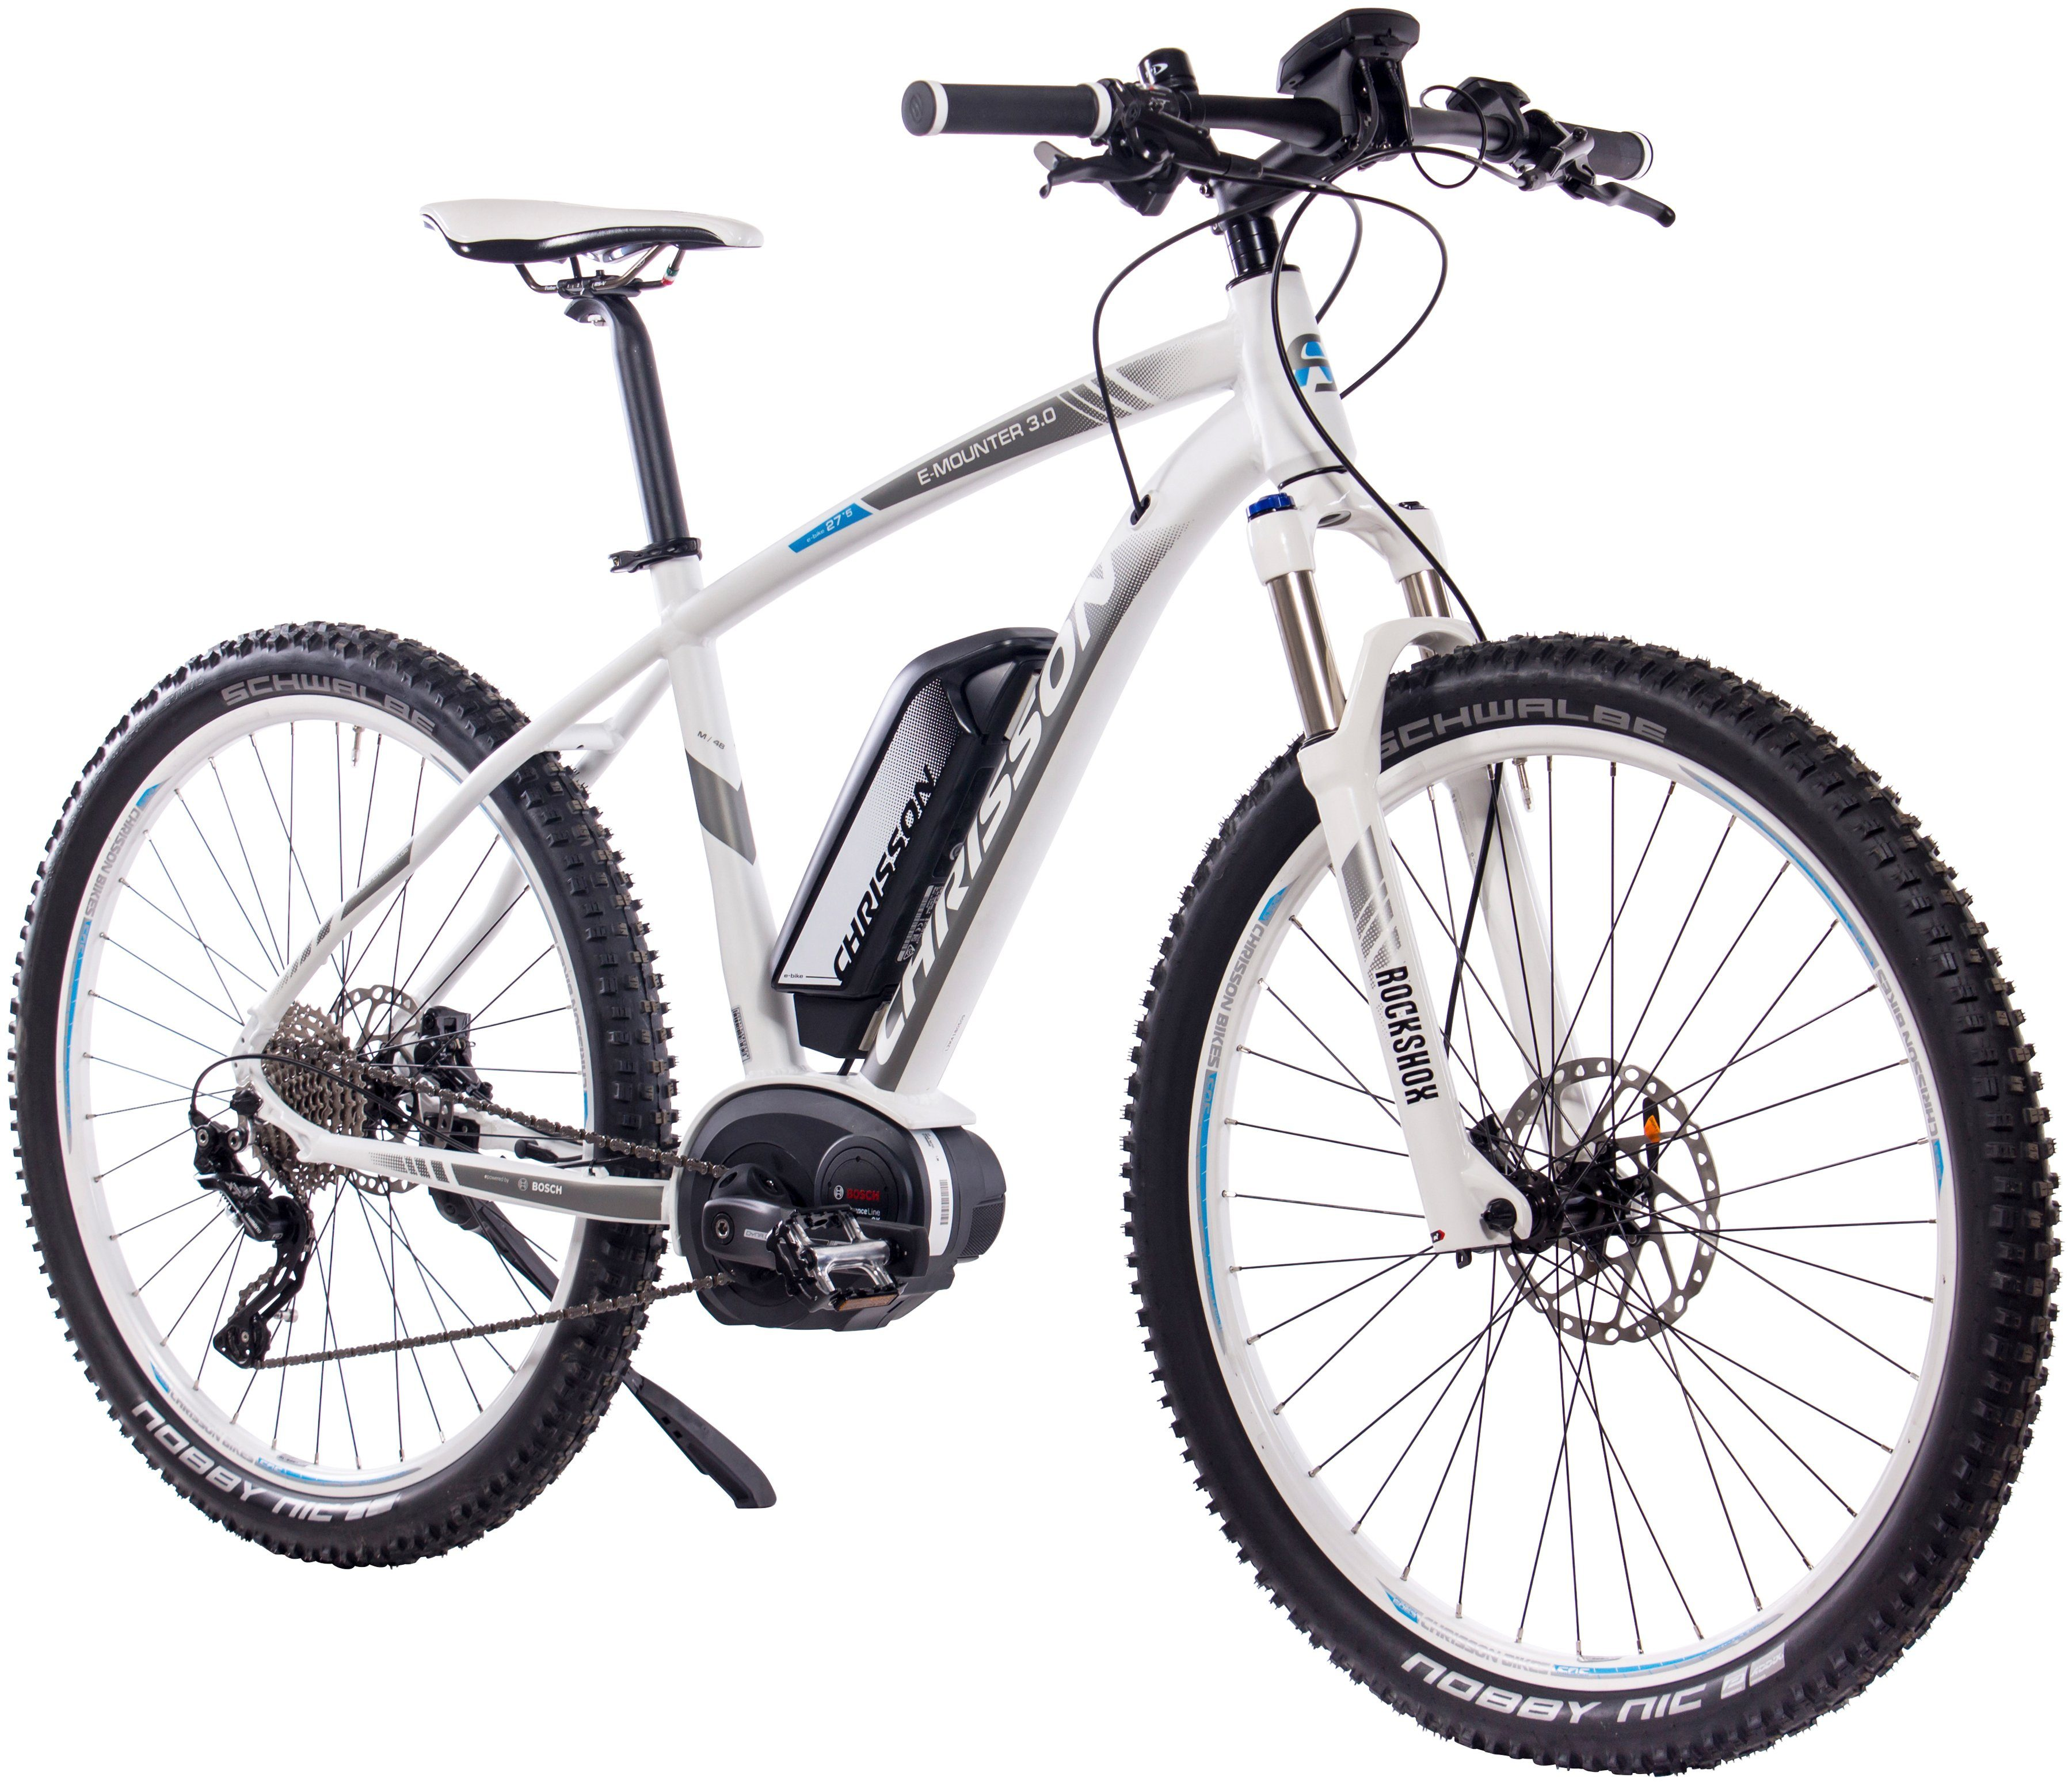 CHRISSON E-Bike Mountainbike »E-Mounter 3.0«, 27,5 Zoll, RH52cm, BOSCH Performance Line CX, 500 Wh